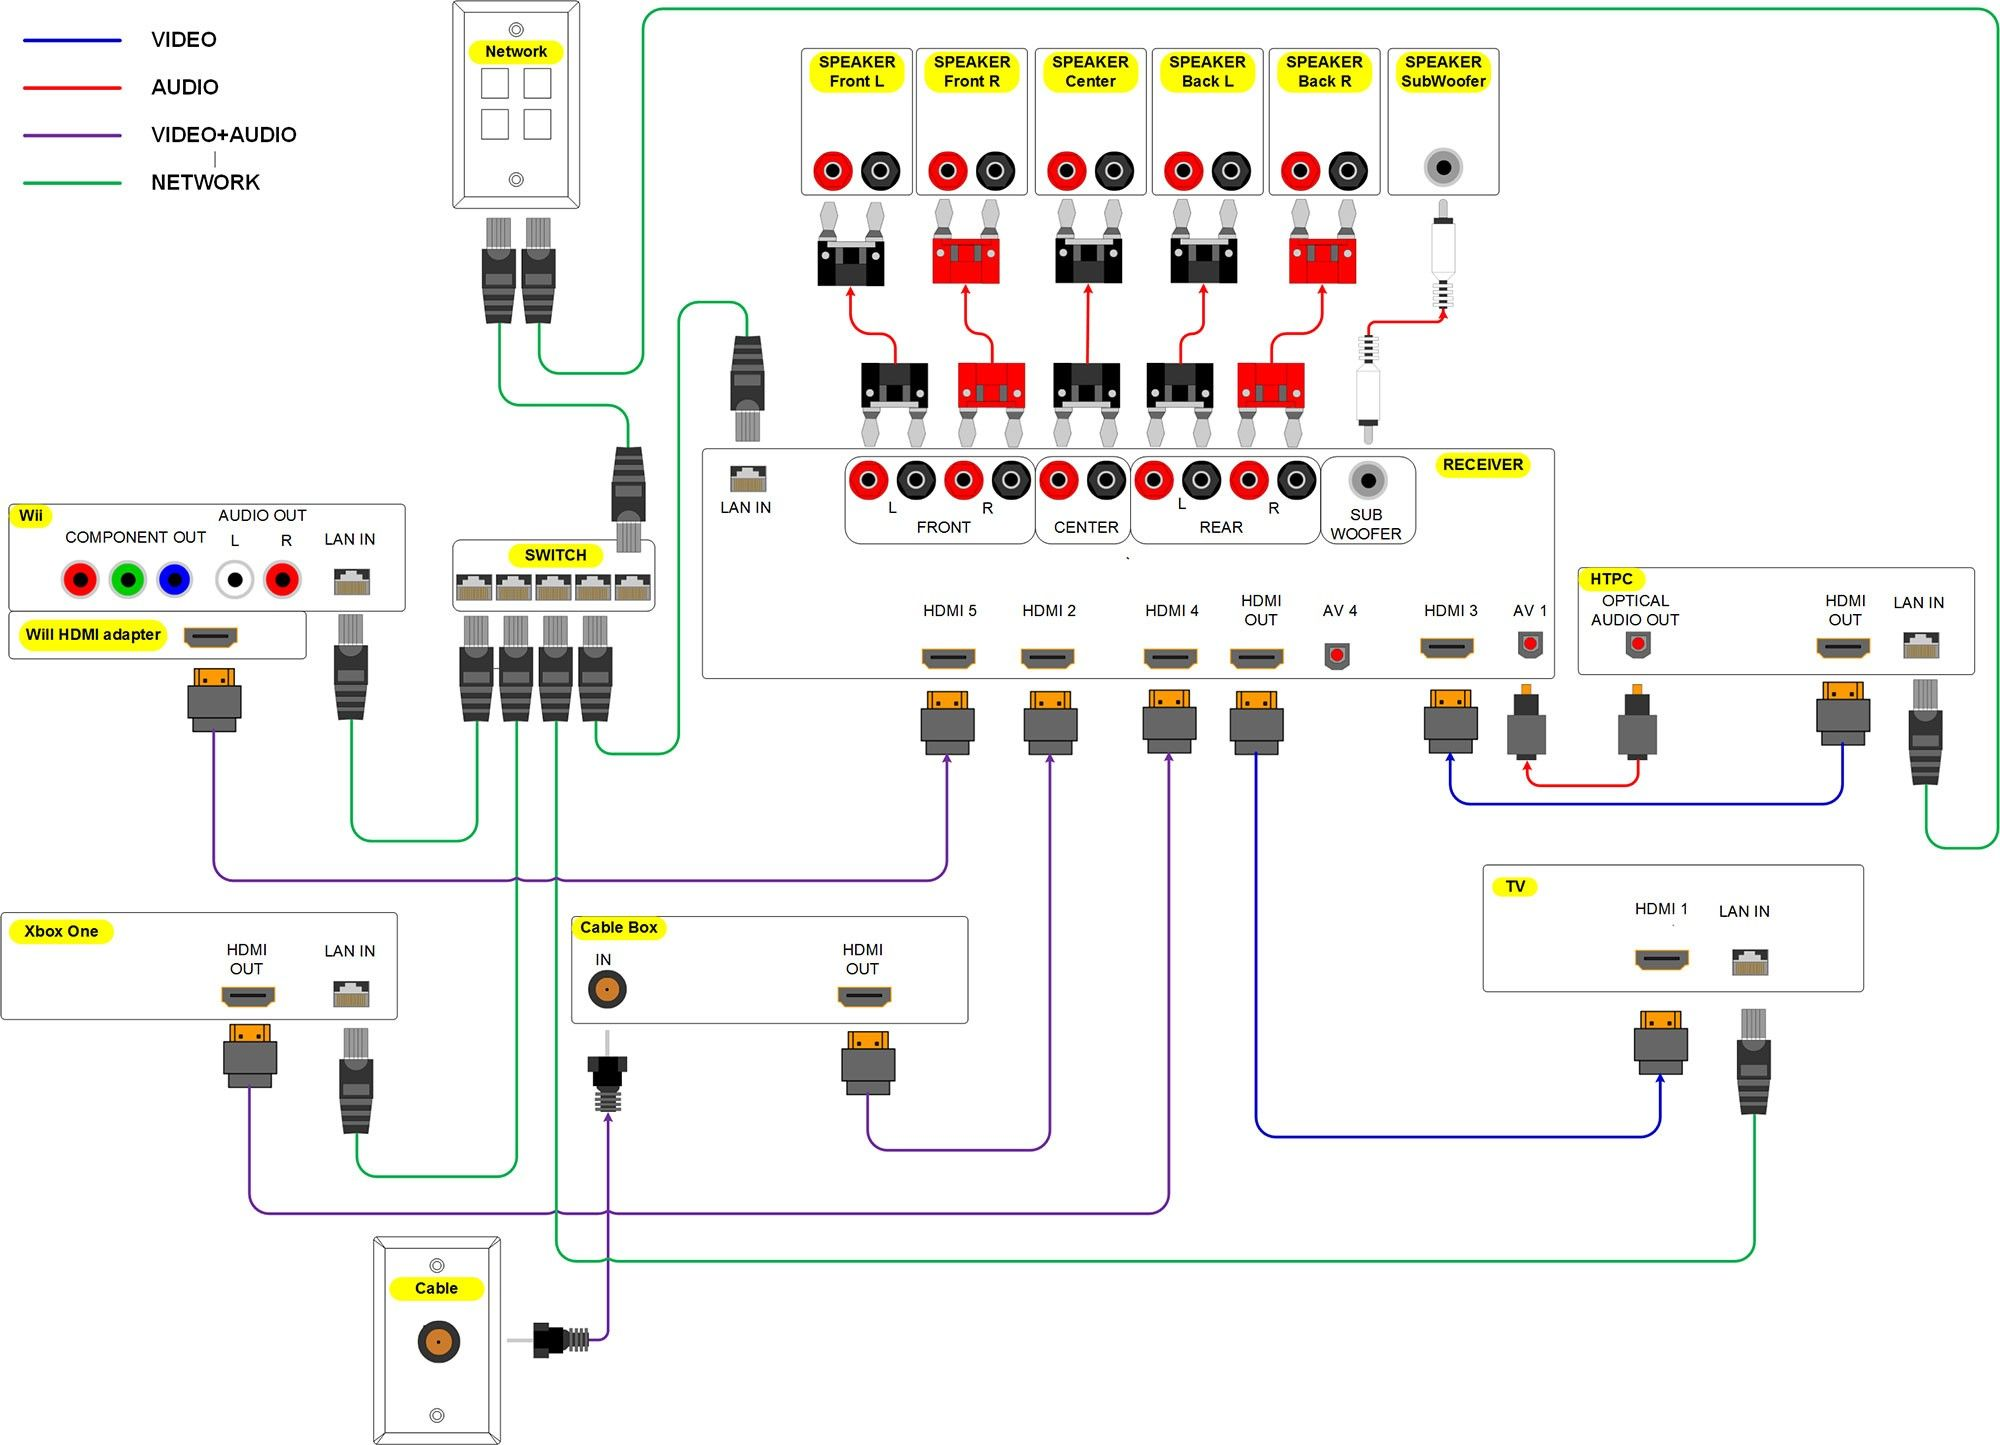 New Typical House Wiring Diagram Diagram Wiringdiagram Diagramming Diagramm Visuals Visualisa Home Theater Wiring Home Electrical Wiring Subwoofer Wiring